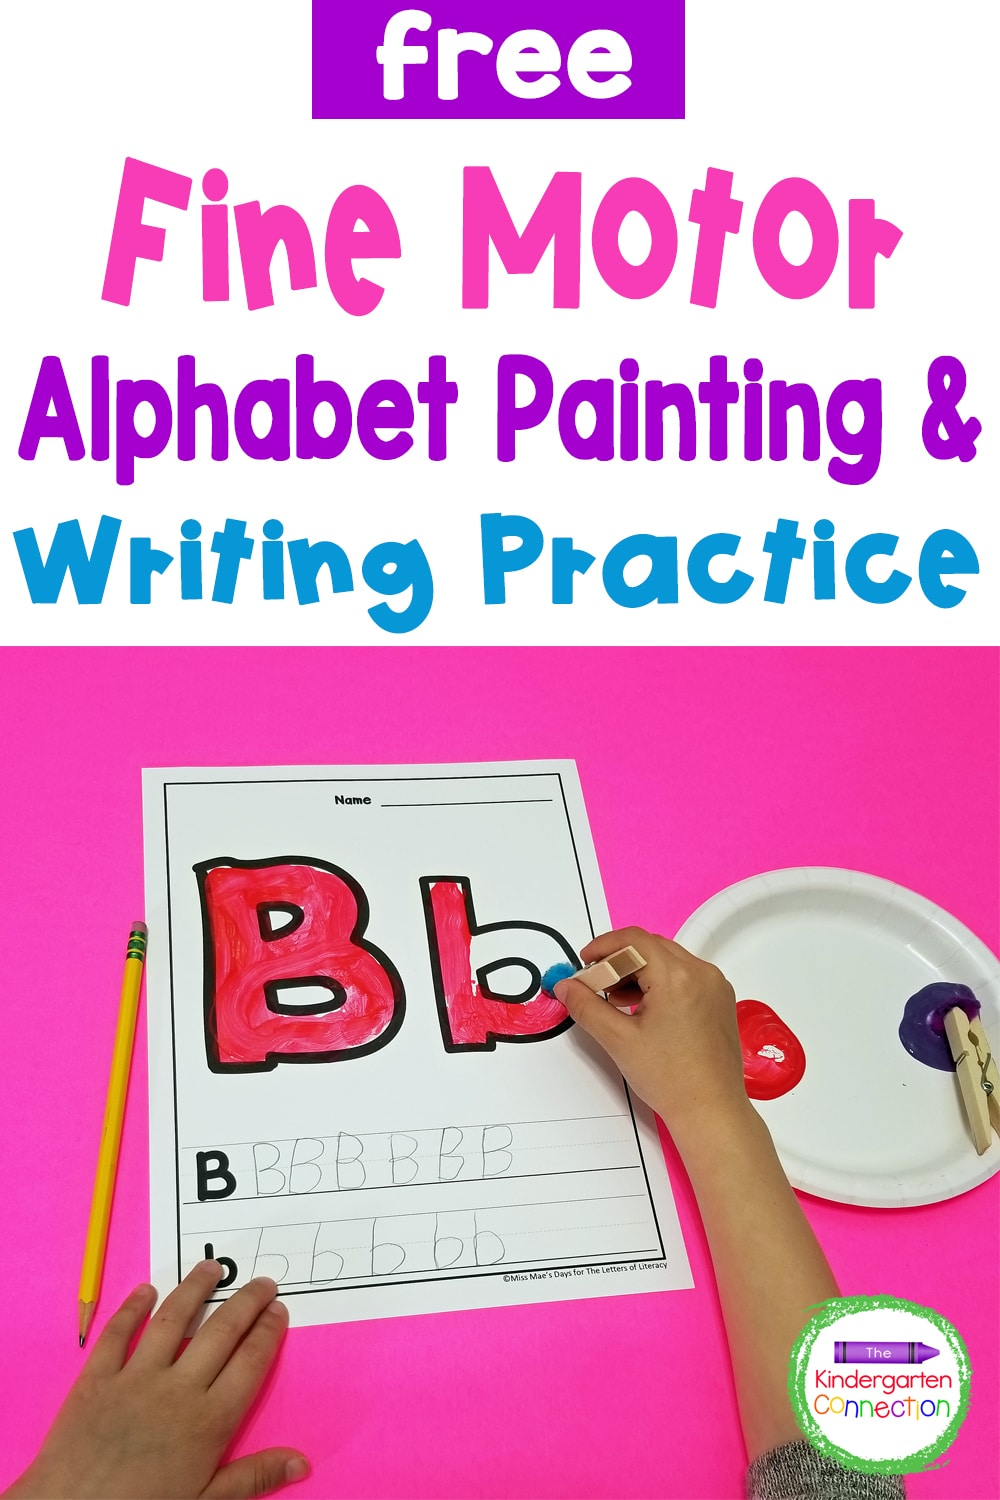 Combine letter practice, fine motor skills development, and the love of painting with this free Fine Motor Letter Painting Activity!